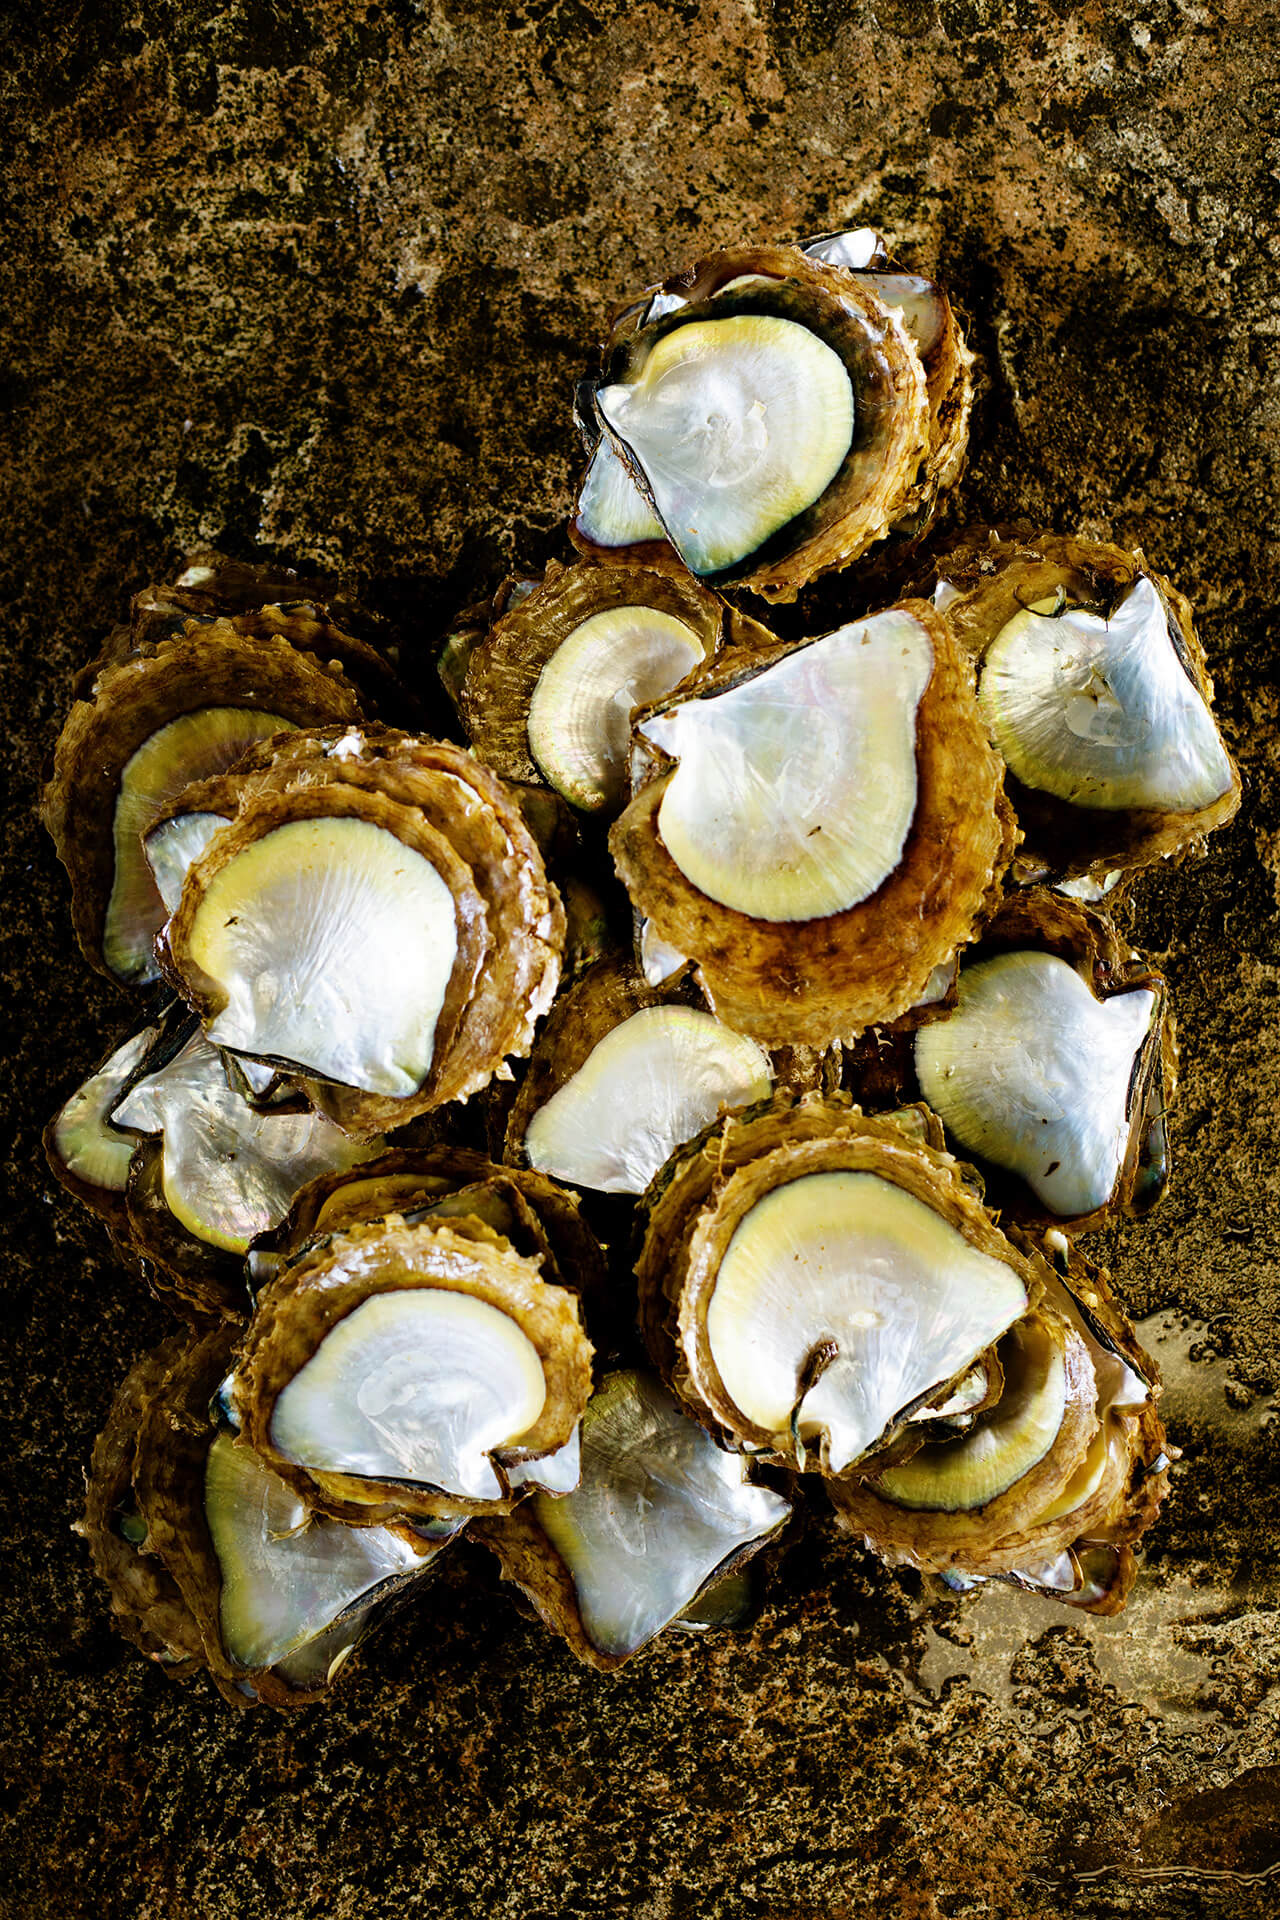 Treasure Island - Shells of the Pinctada maxima, the largest of the pearl oysters, and capable of producing the rarest of the South Sea pearls